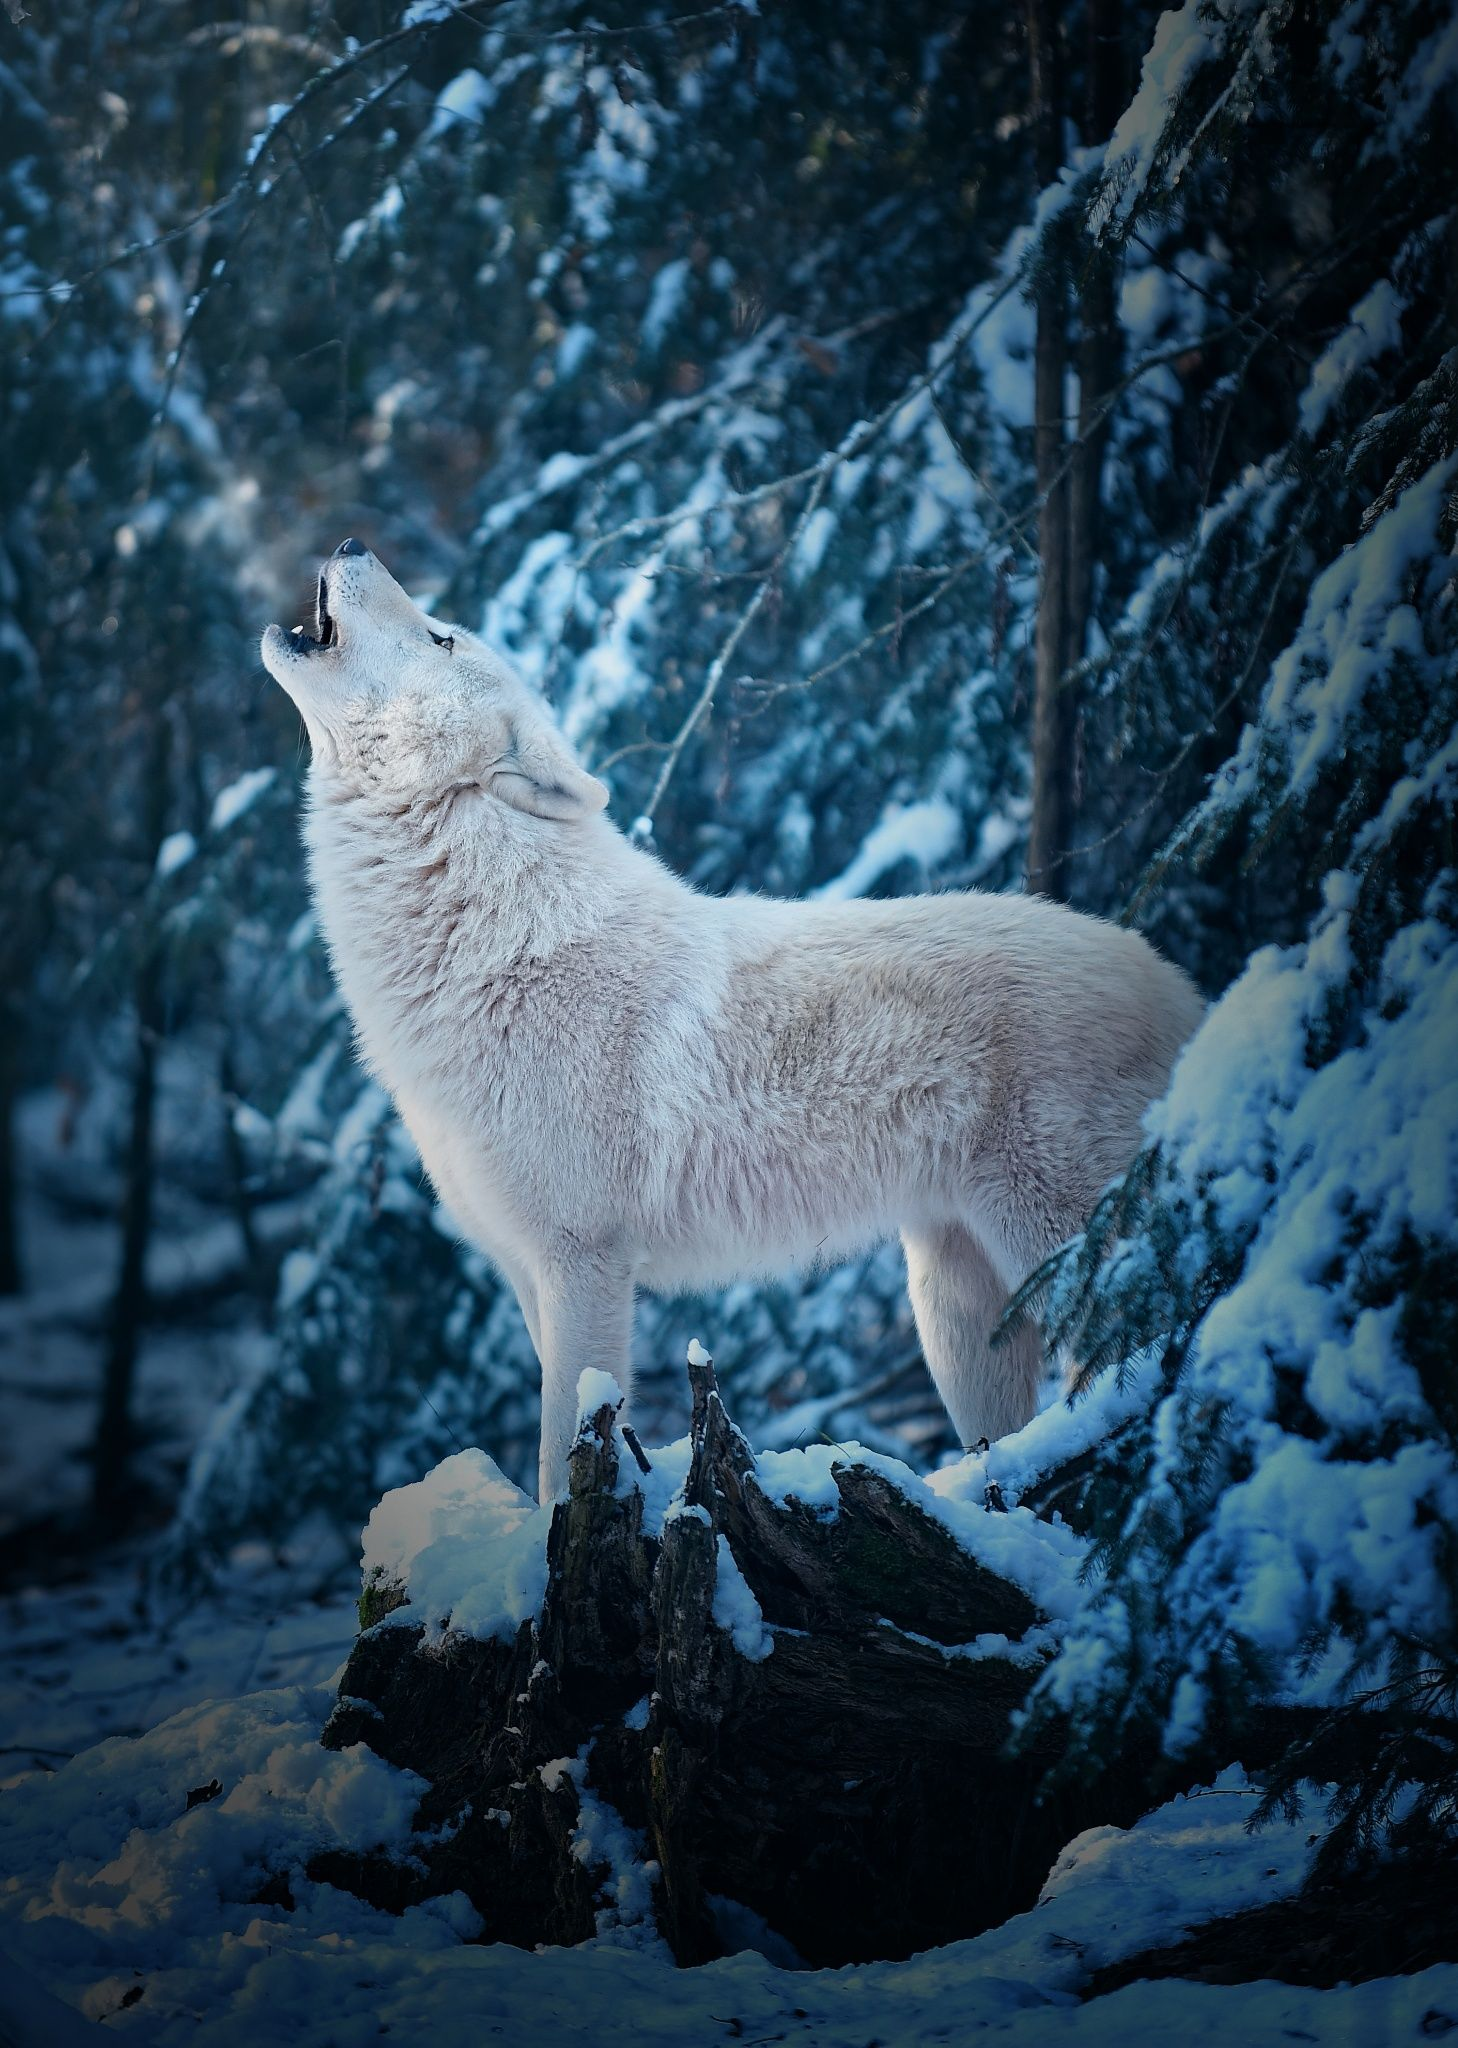 The cold winter days show the Artic wolves in their beauty ...